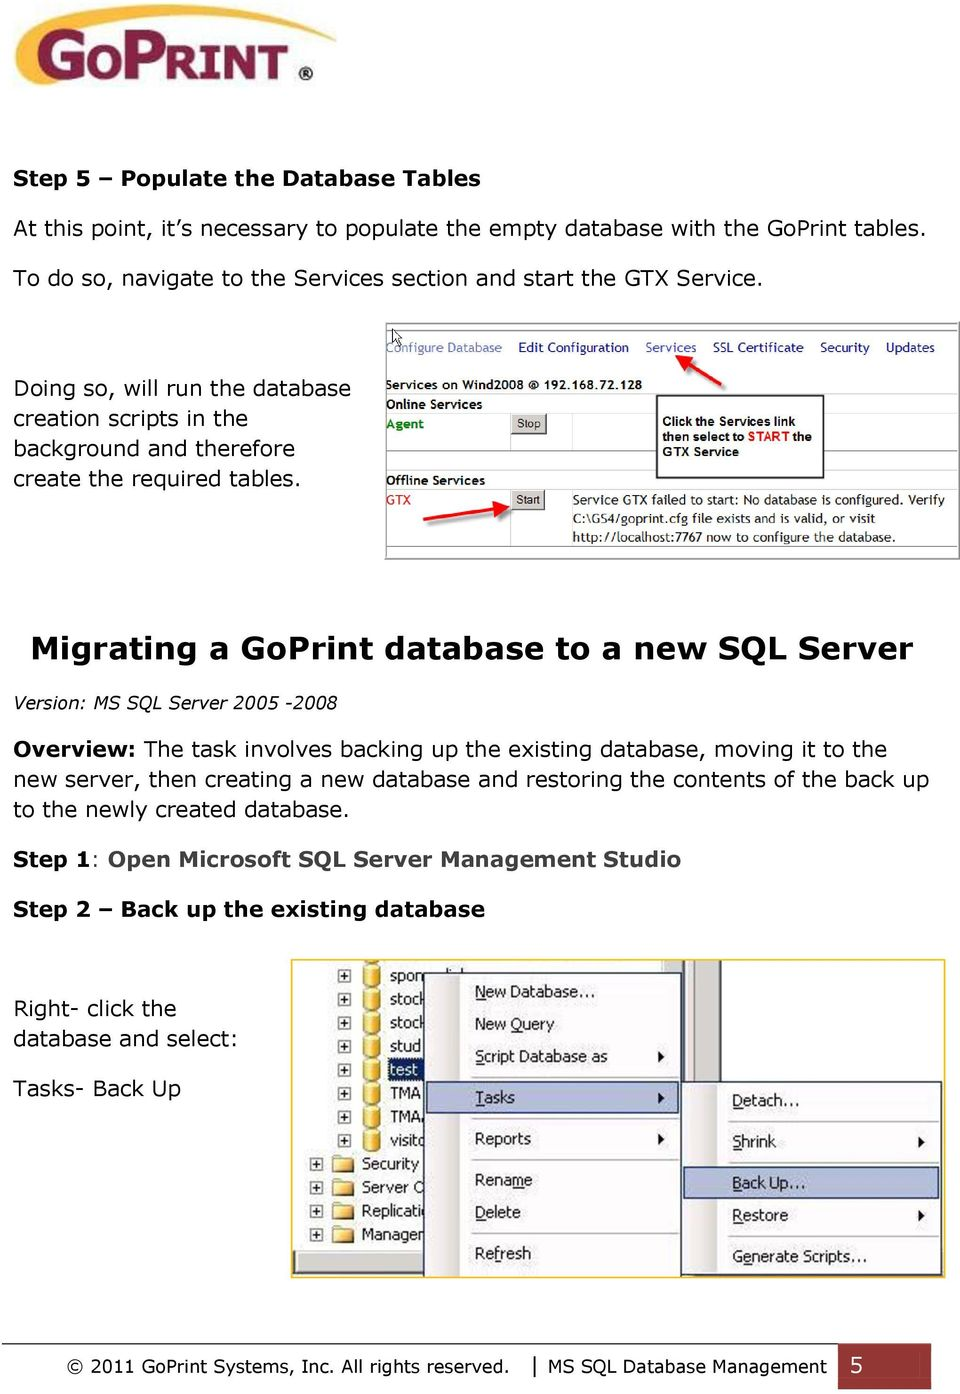 Migrating a GoPrint database to a new SQL Server Version: MS SQL Server 2005-2008 Overview: The task involves backing up the existing database, moving it to the new server, then creating a new